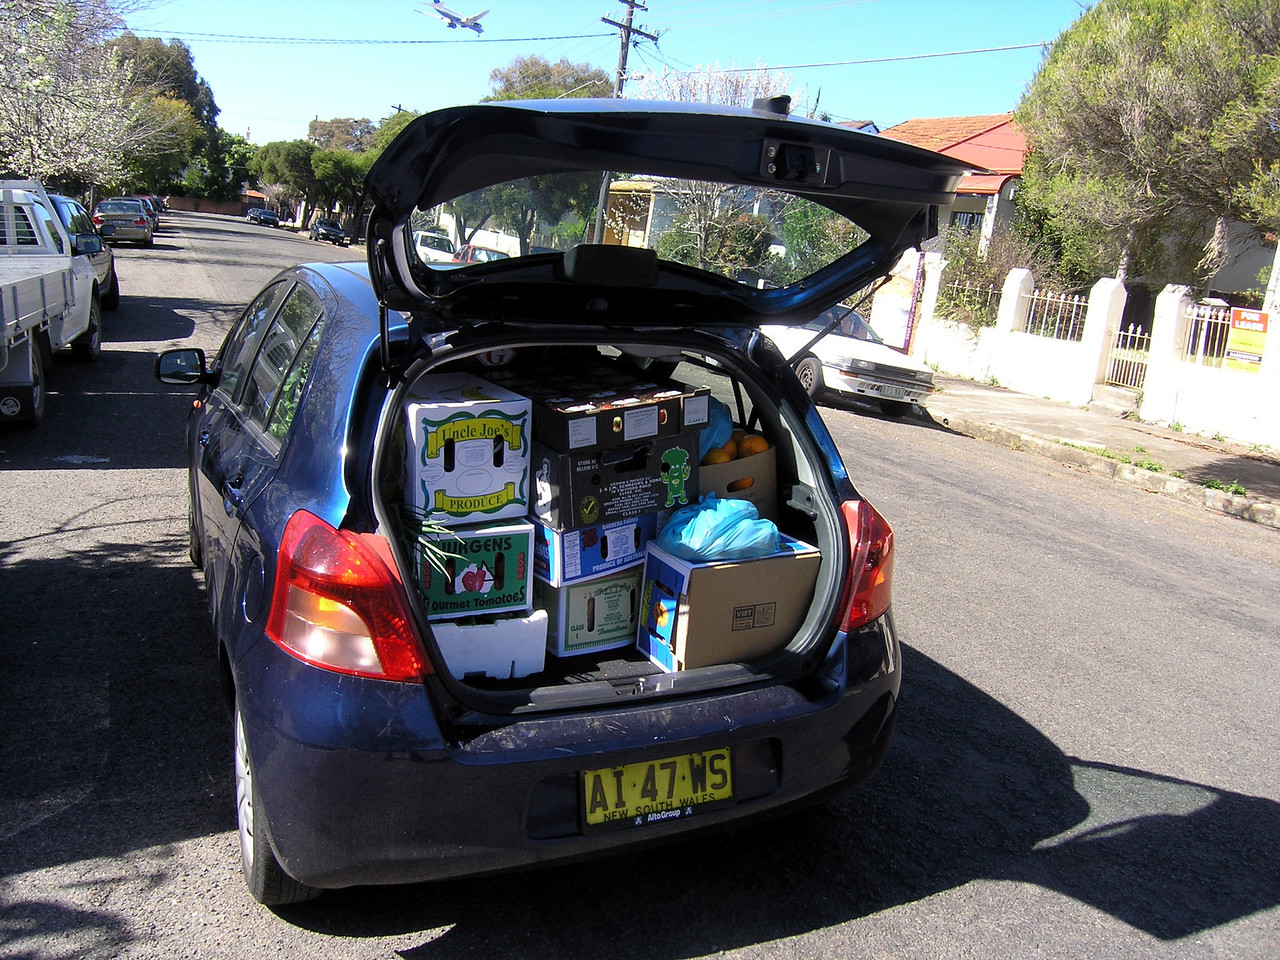 How much can you fit in a Yaris?